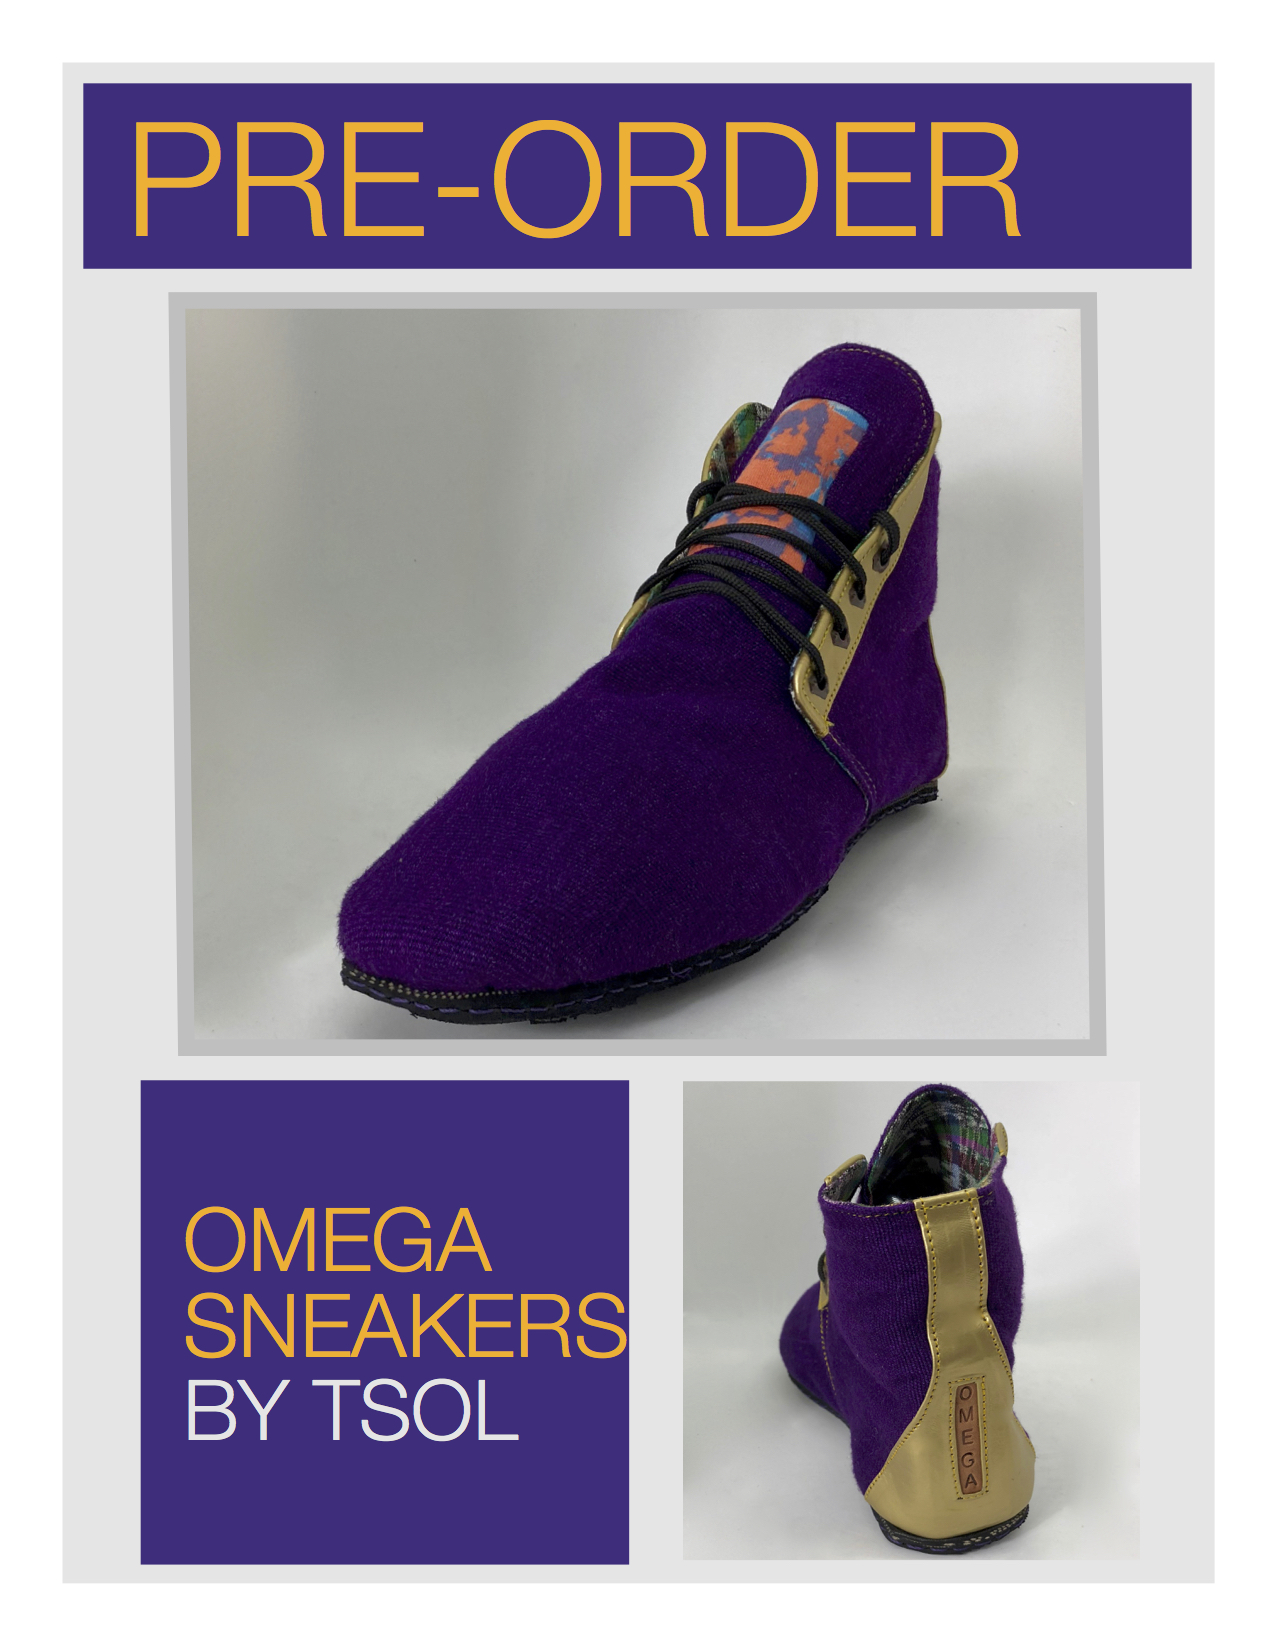 OMEGA Fraternity Sneakers by tsoL apparel - STEP IN COMFORTtsoL apparel's Tribute Series